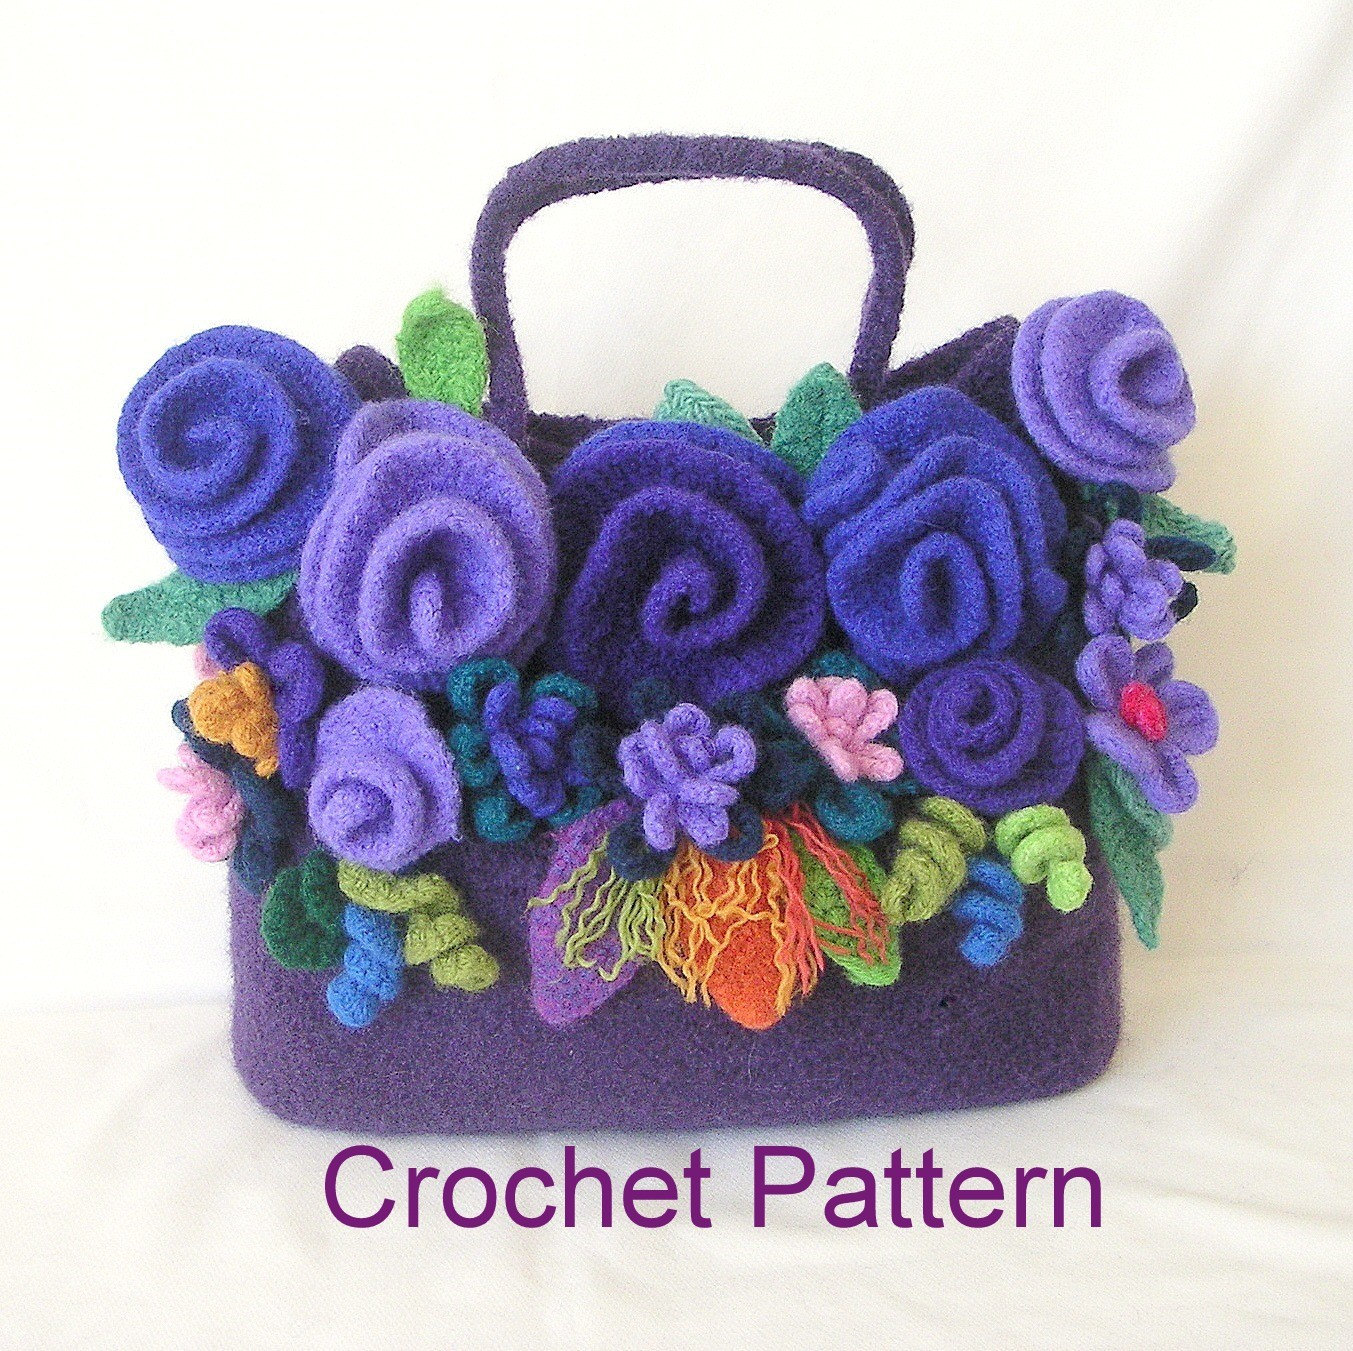 How To Make Crochet Felted Flower Bag Pattern Tutorial